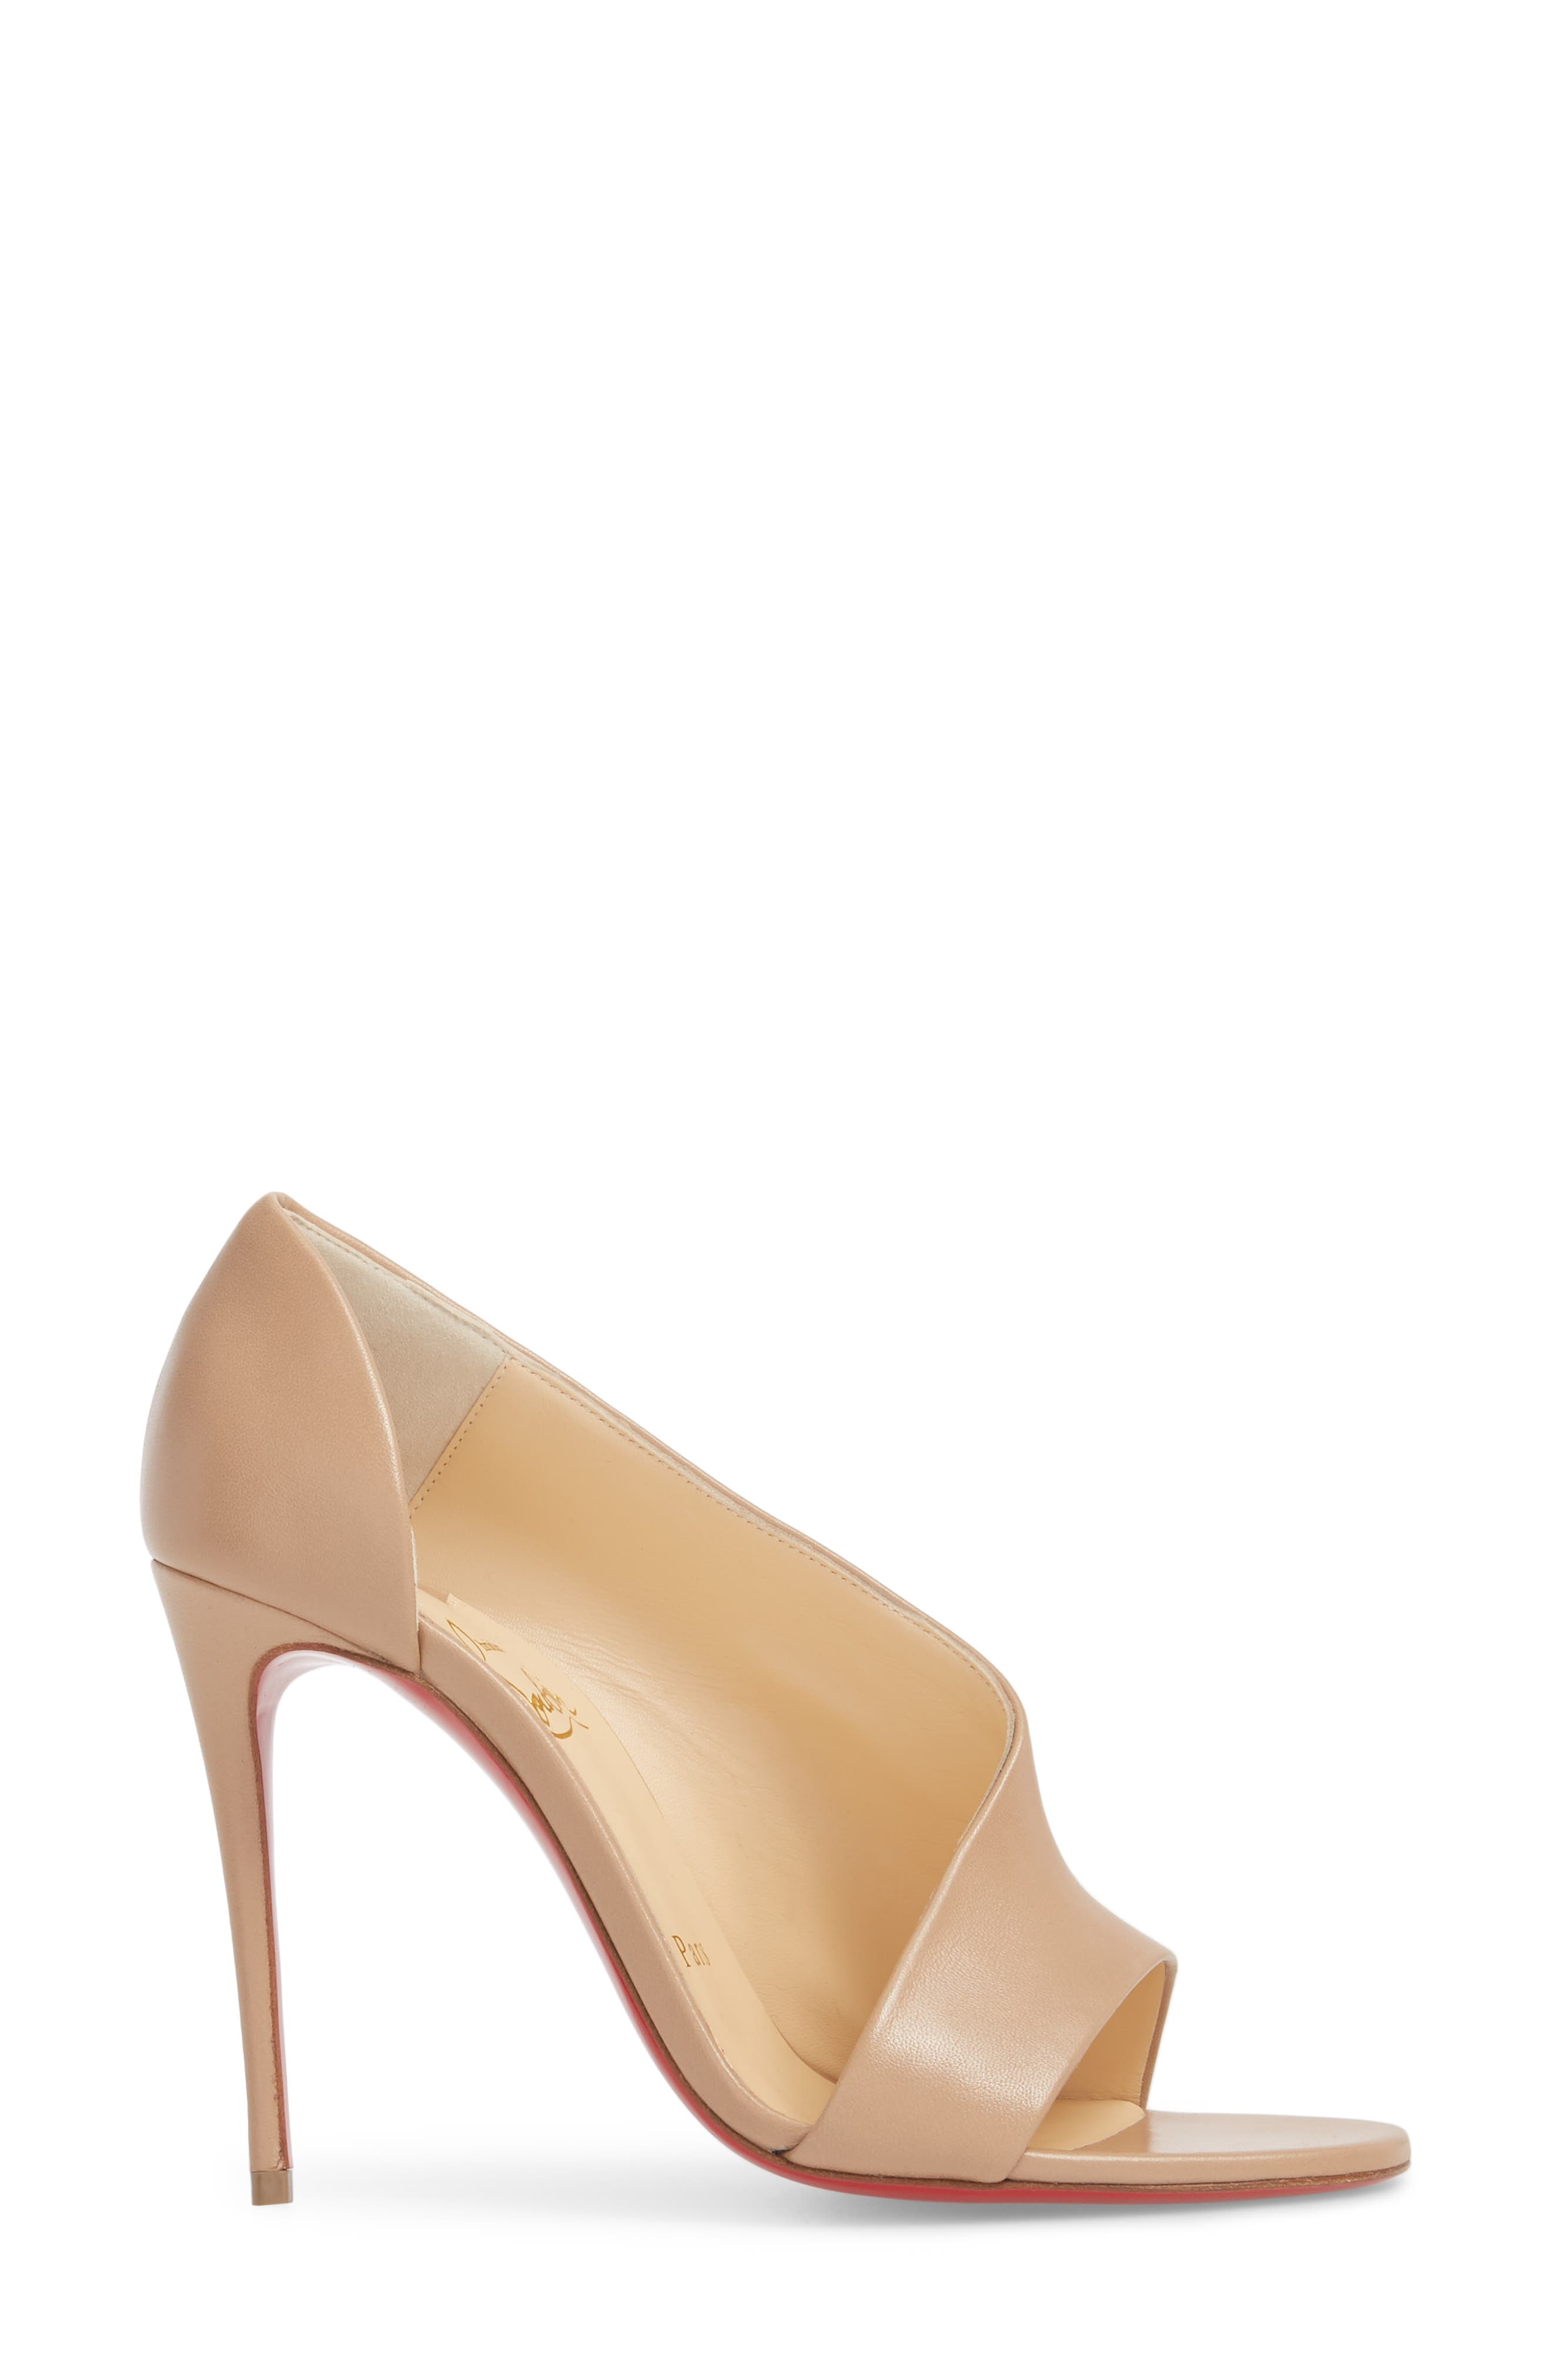 Phoebe Half d'Orsay Sandal,                             Alternate thumbnail 3, color,                             Nude Leather